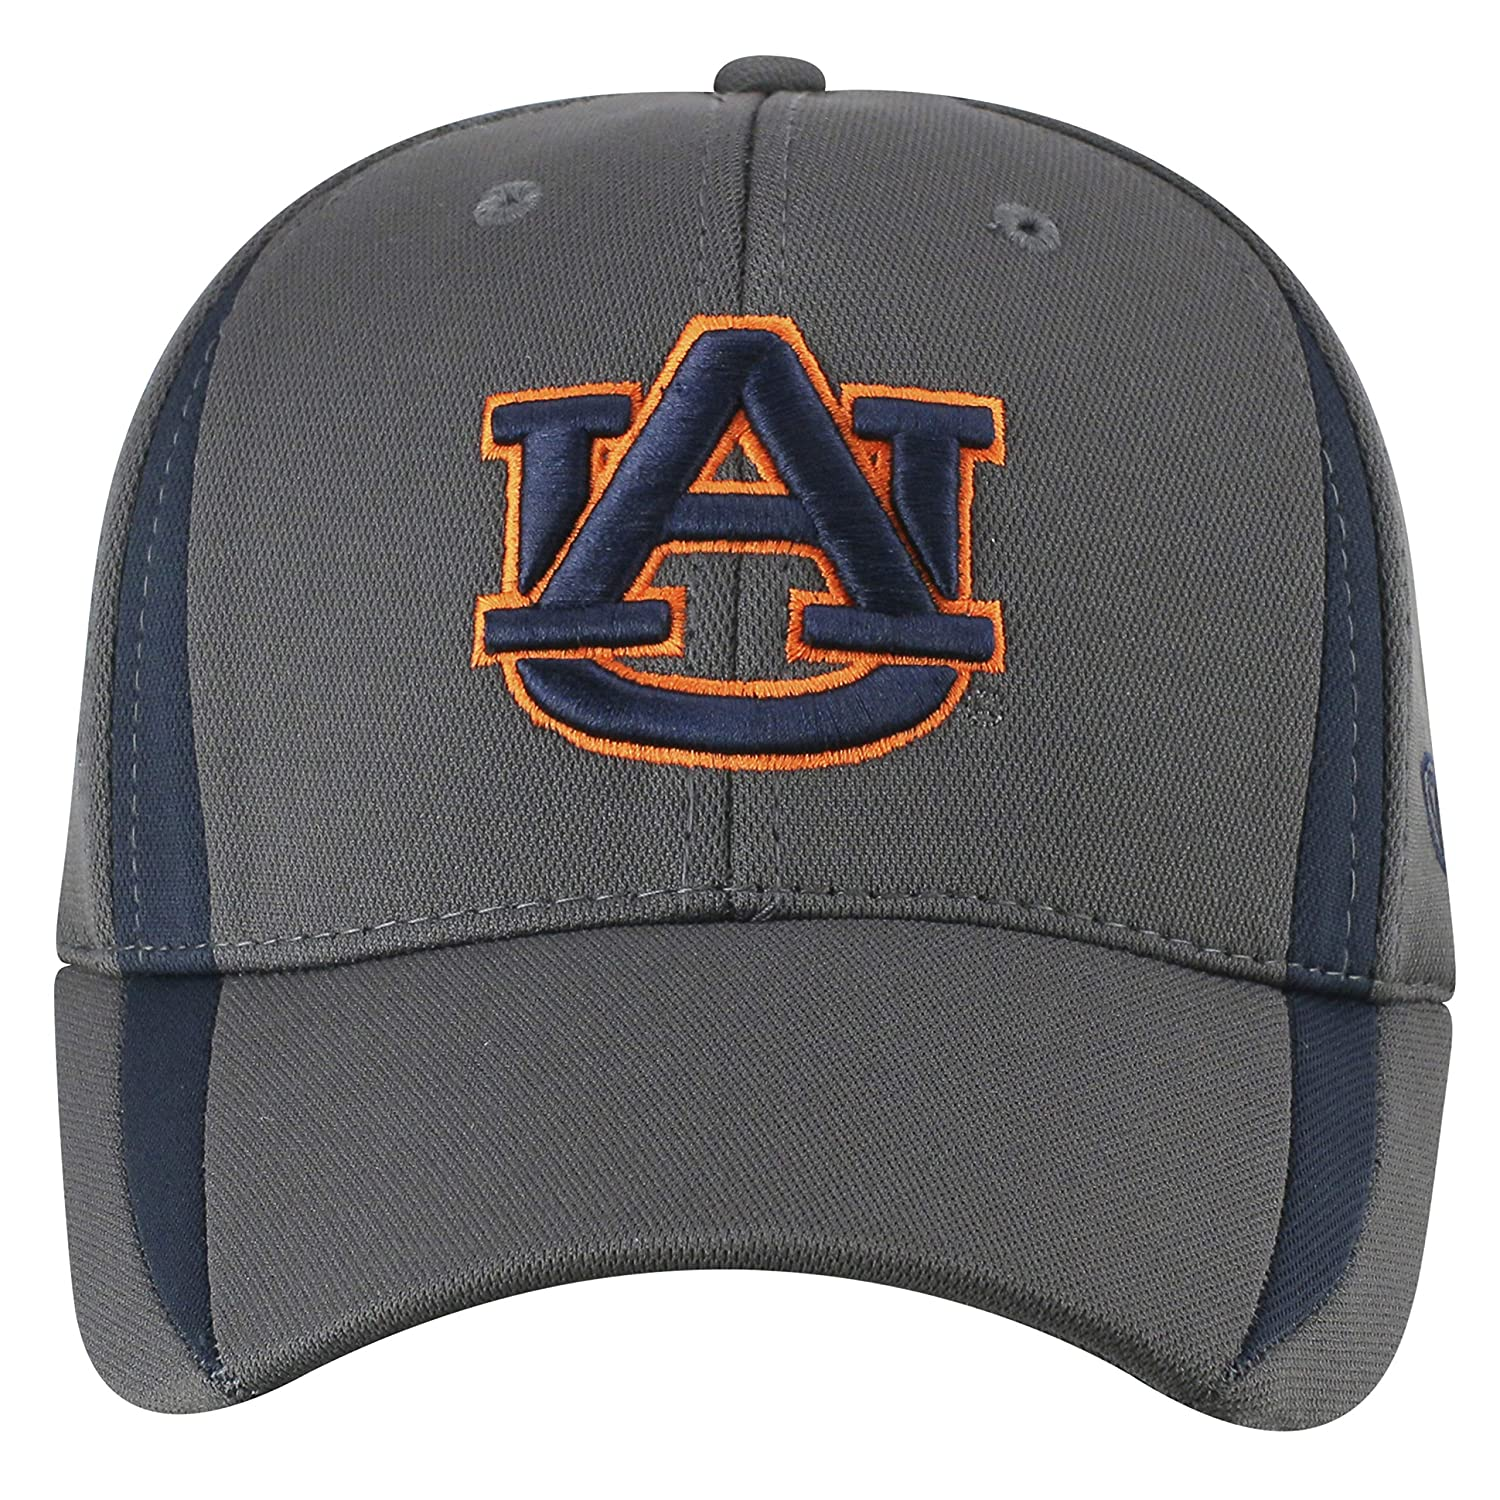 Top of the World NCAA Mens Hat Performance Fitted Charcoal Icon